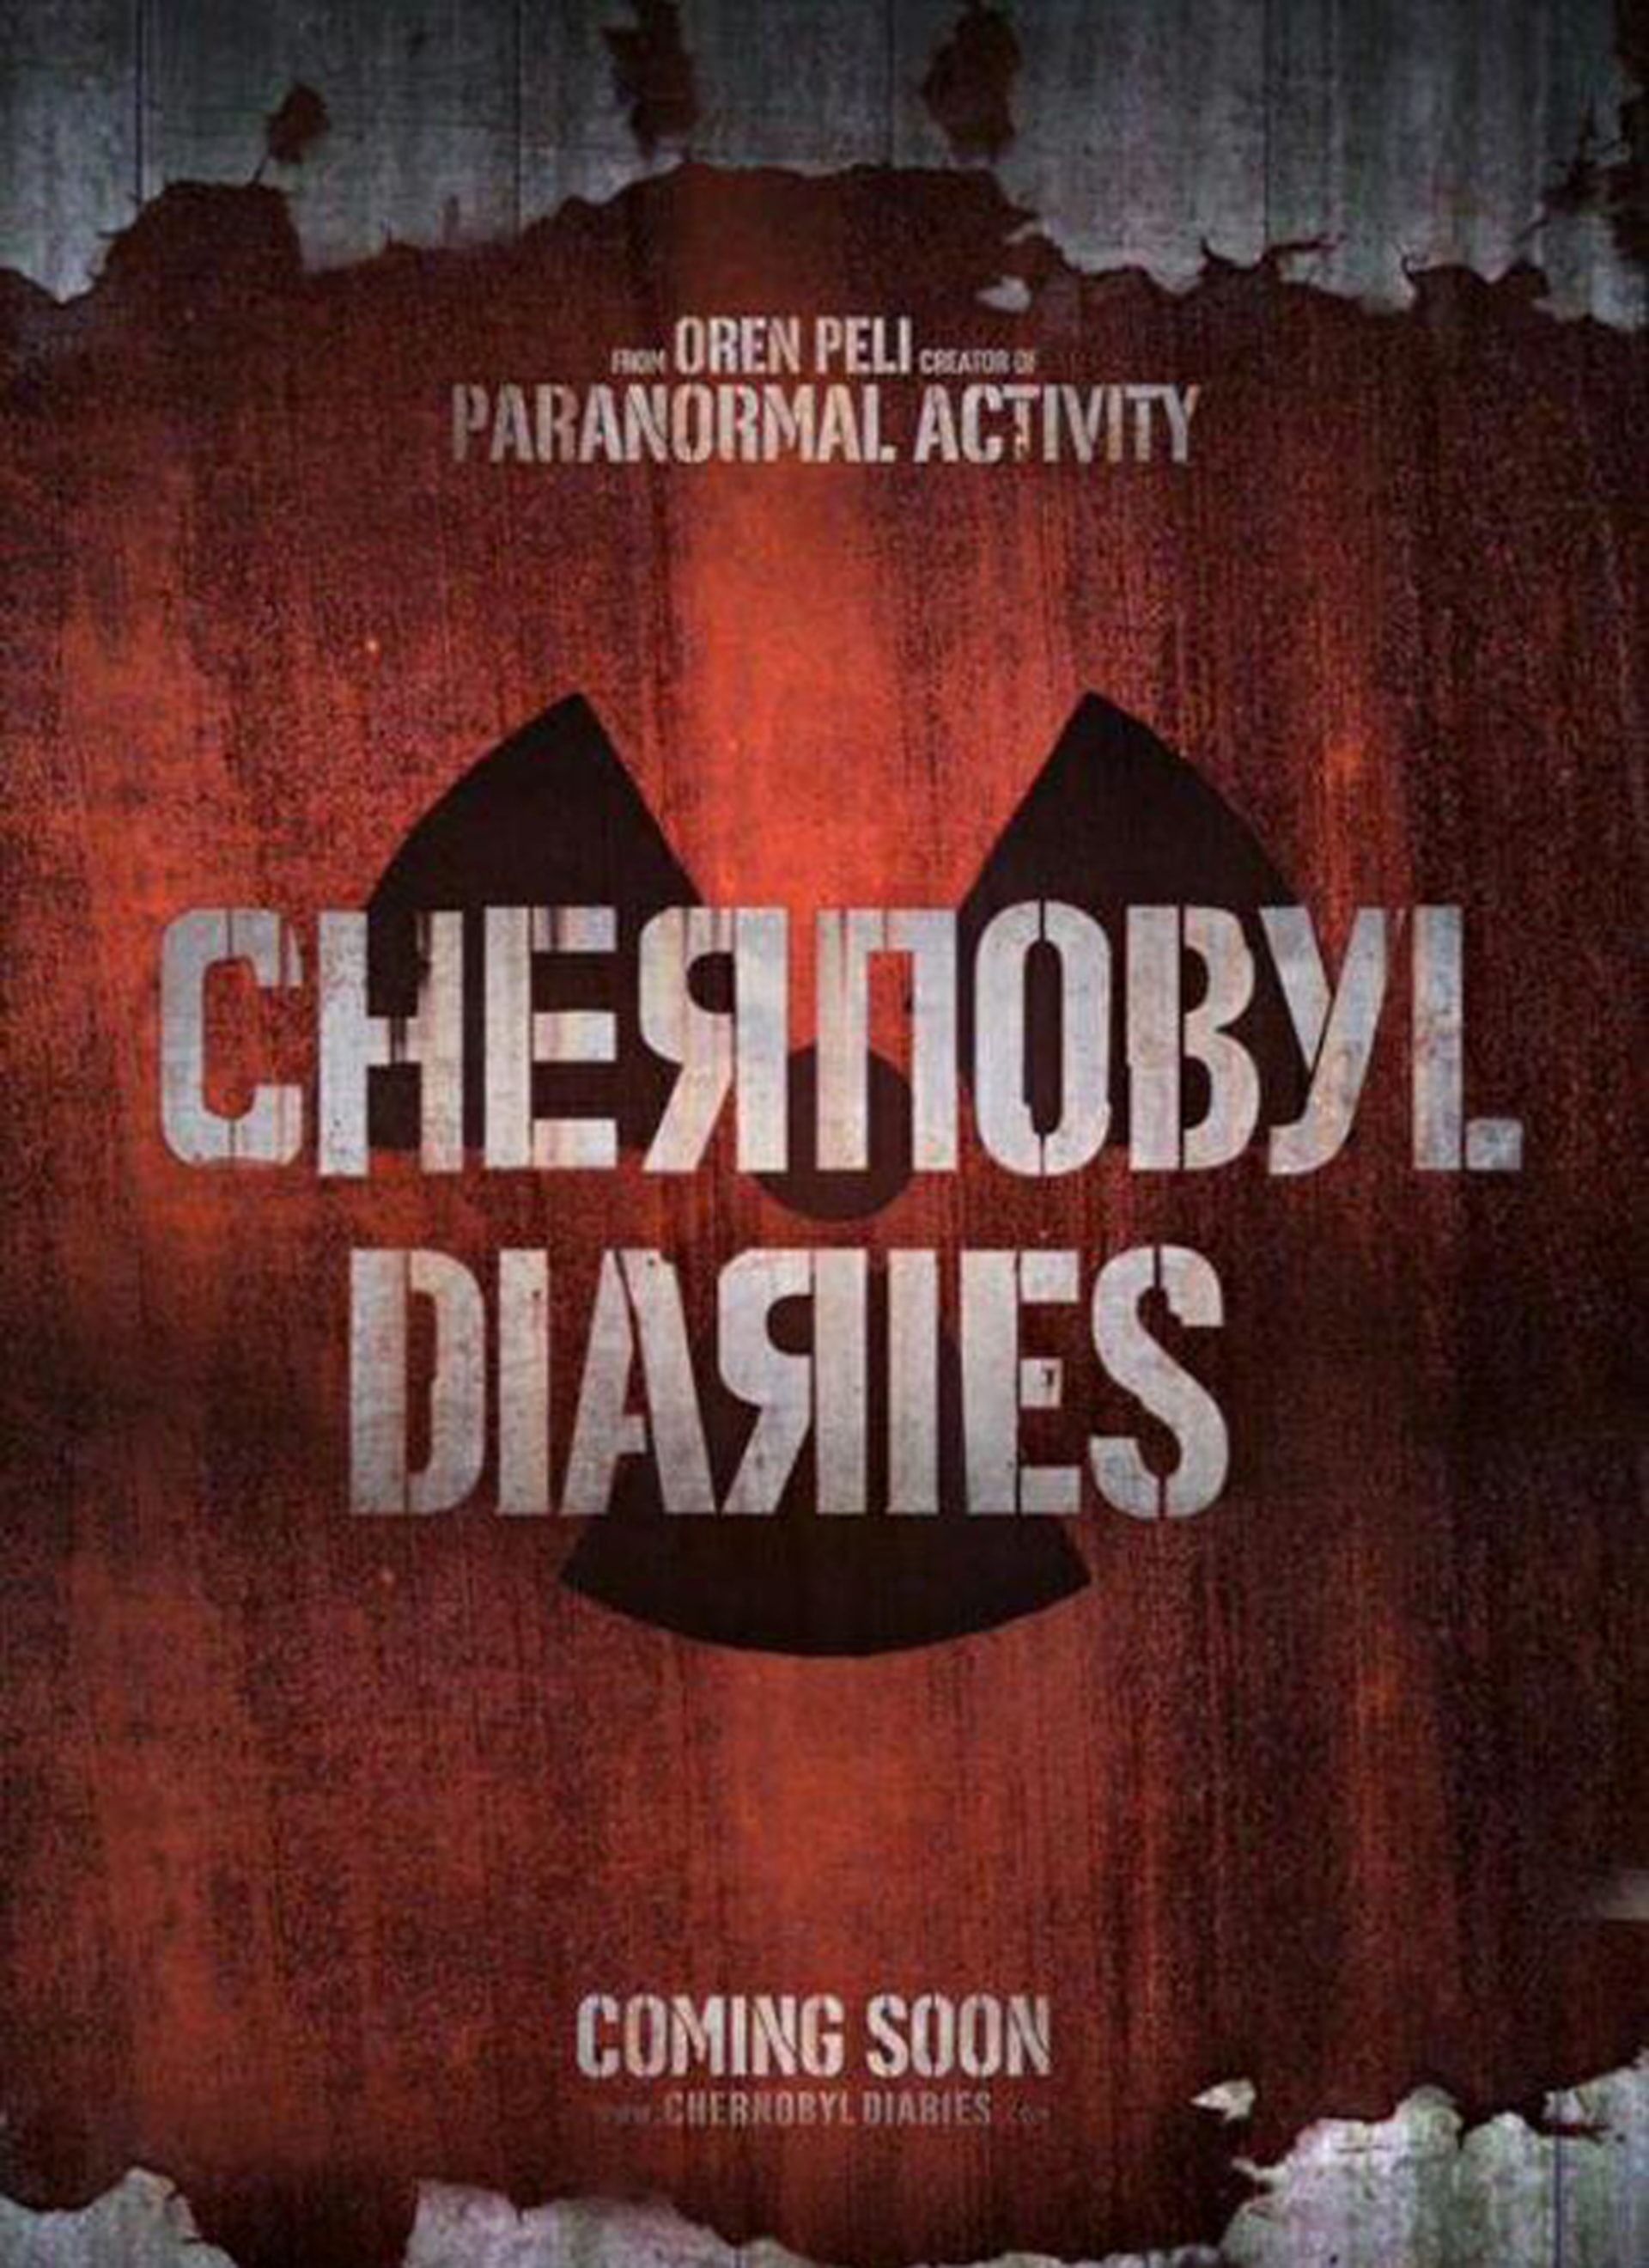 Chernobyl Diaries - Poster 2